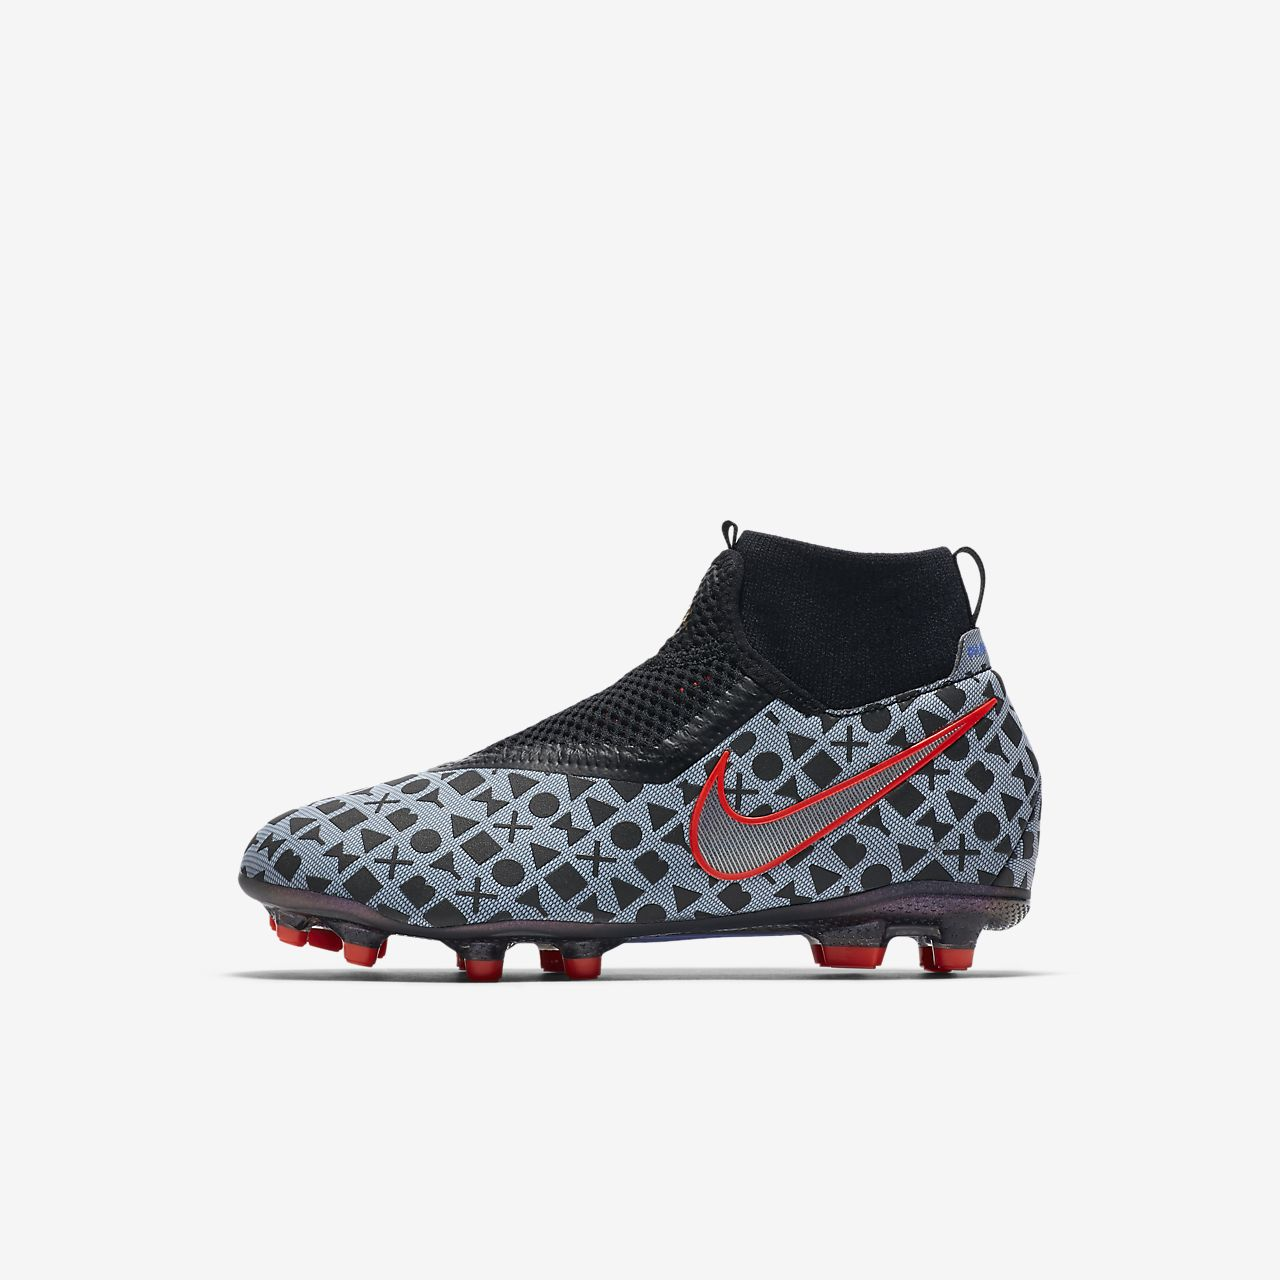 Nike Jr. EA Sports X Phantom Vision Academy Dynamic Fit MG Younger/Older Kids' Multi-Ground Football Boot